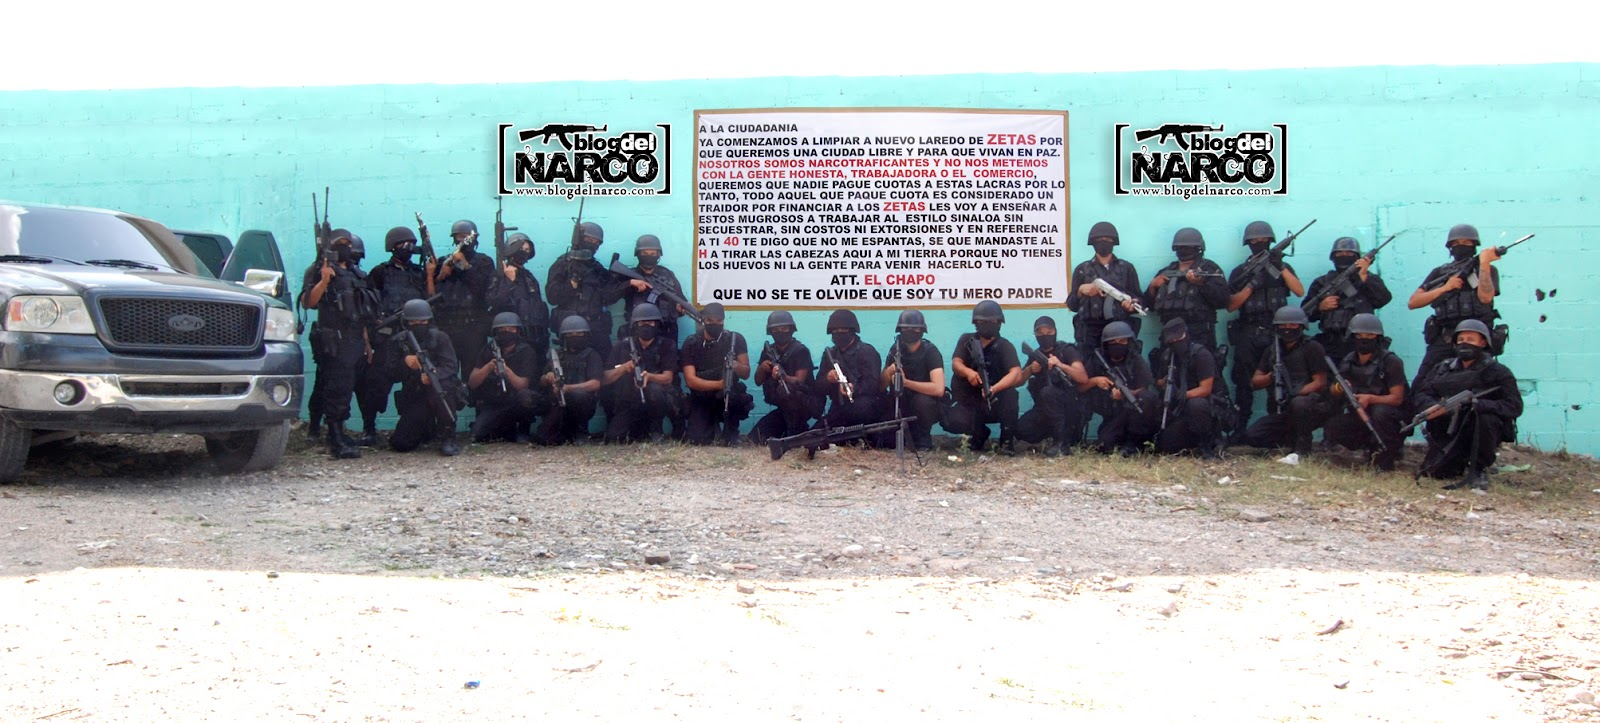 cartel pose next to a narco banner (all pictures credit to BDN